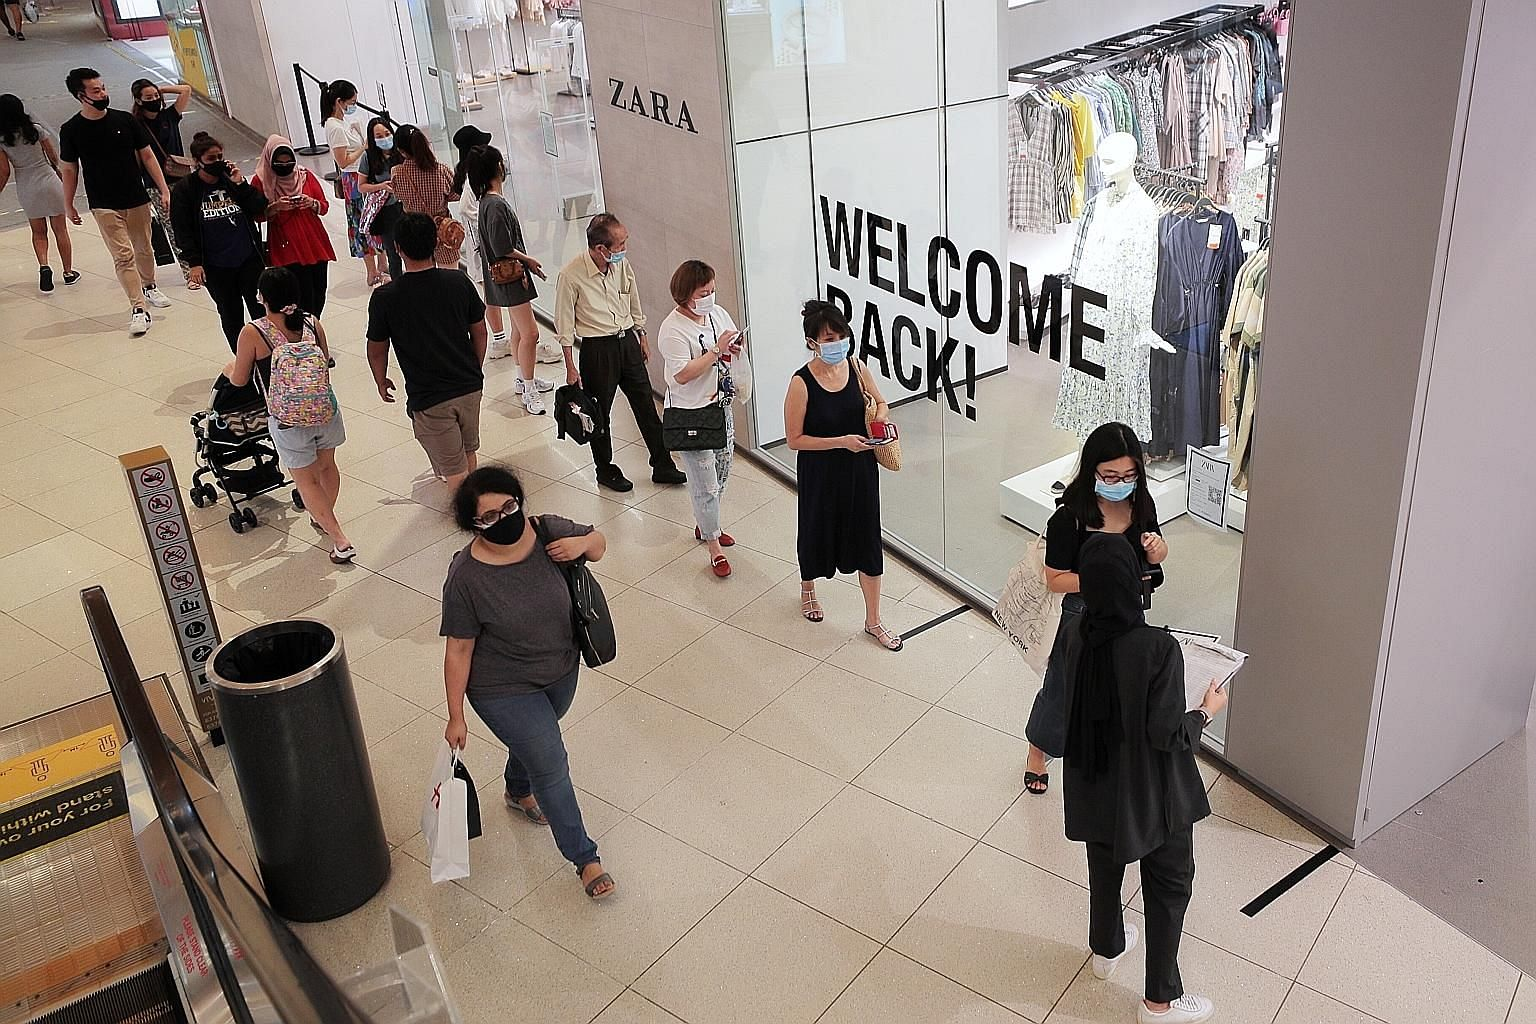 Shoppers queueing to enter a store at VivoCity mall on Sunday, the first weekend of the reopening of Singapore's economy. The author says that when a country relaxes its restrictions on people's movement, it is inevitable that said country will begin